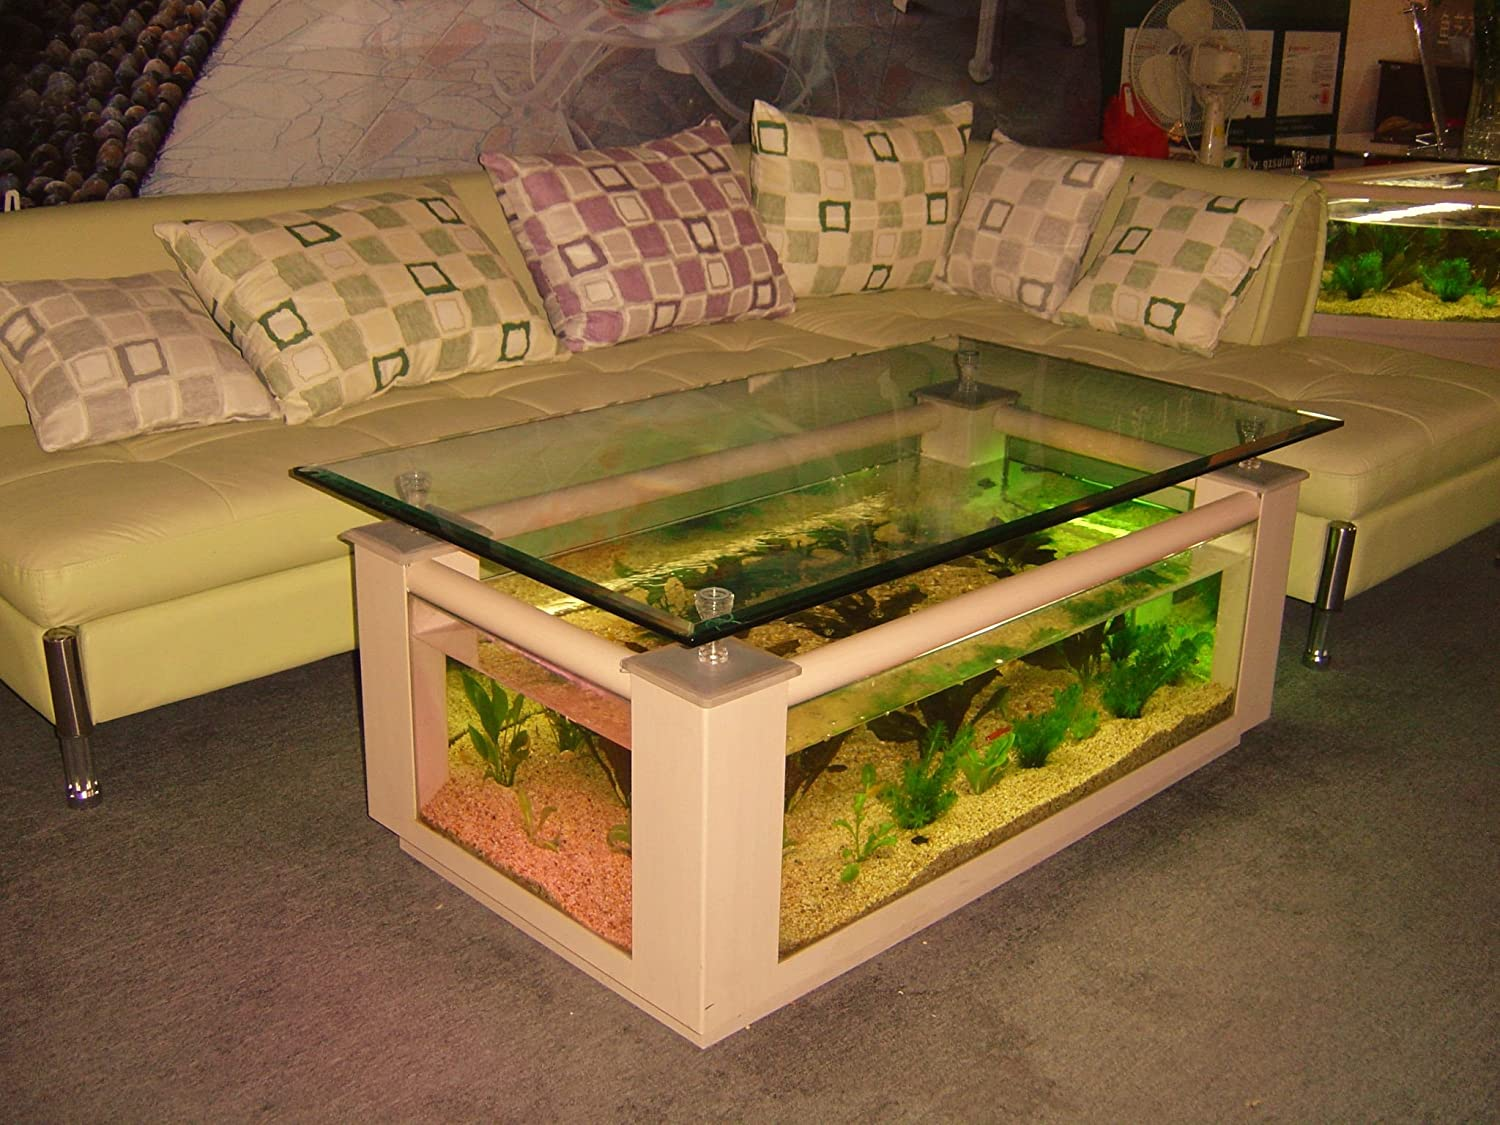 Amazon.com : 36gl Rectangle Coffee Table Aquarium, Completely Fish Ready  With Hidden Filter And LED Lights : Pet Supplies